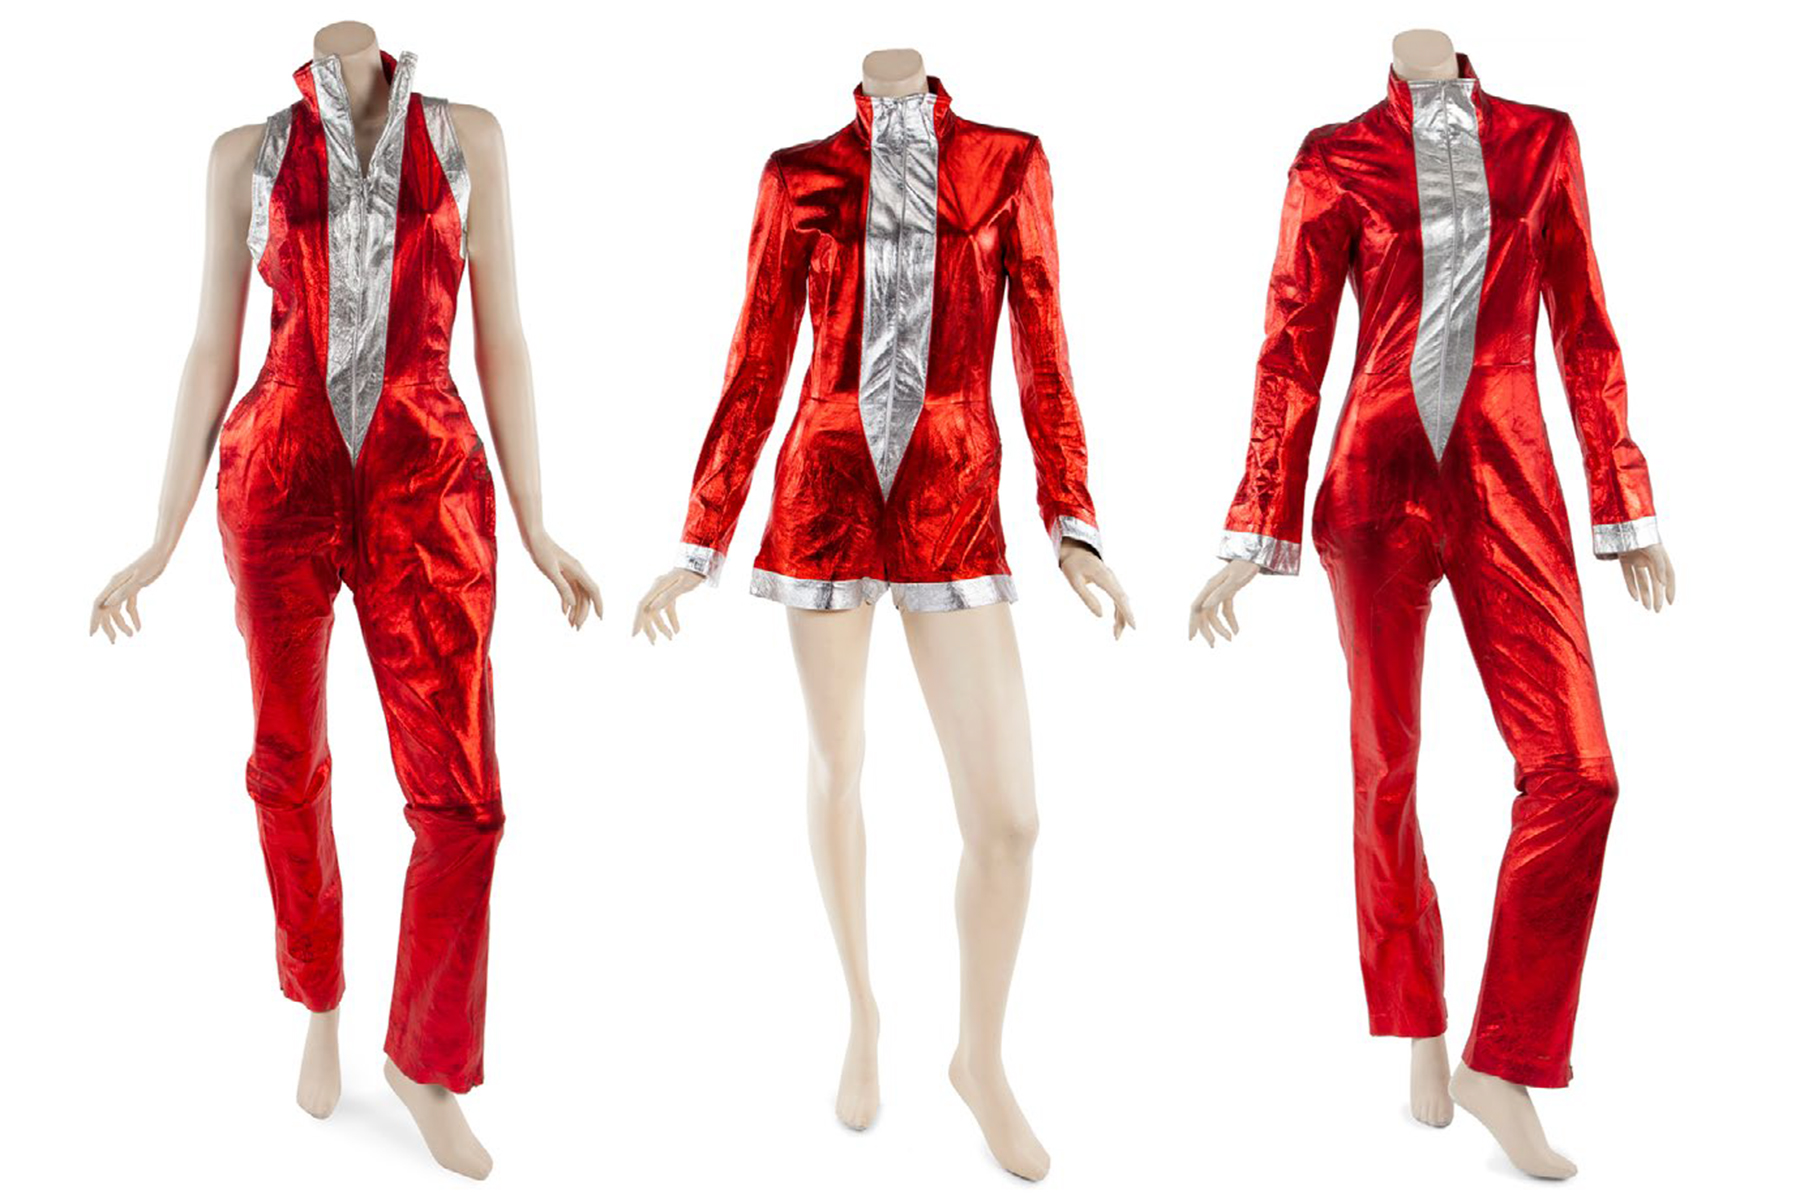 """""""Independent Women Part 1"""" music video costumes left to right worn by Beyoncé Knowles, Kelly Rowland and Michelle Williams of Destiny's Child"""